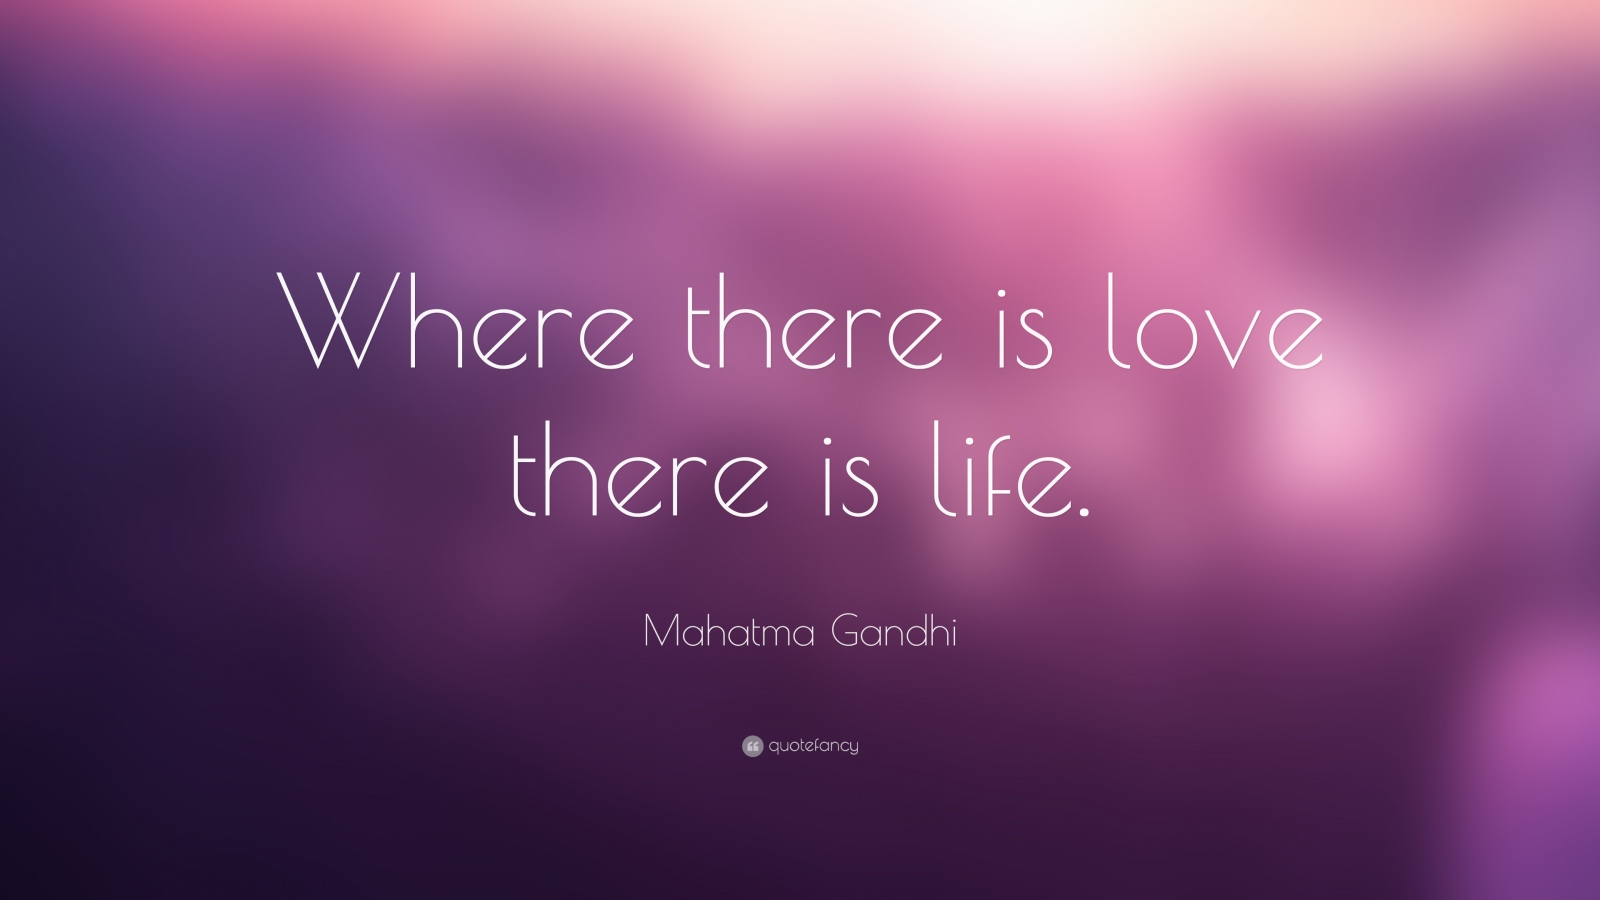 steffyflores.files.wordpress.com/2015/06/801-mahatma-gandhi-quote-where-there-is-love-there-is-life.jpg